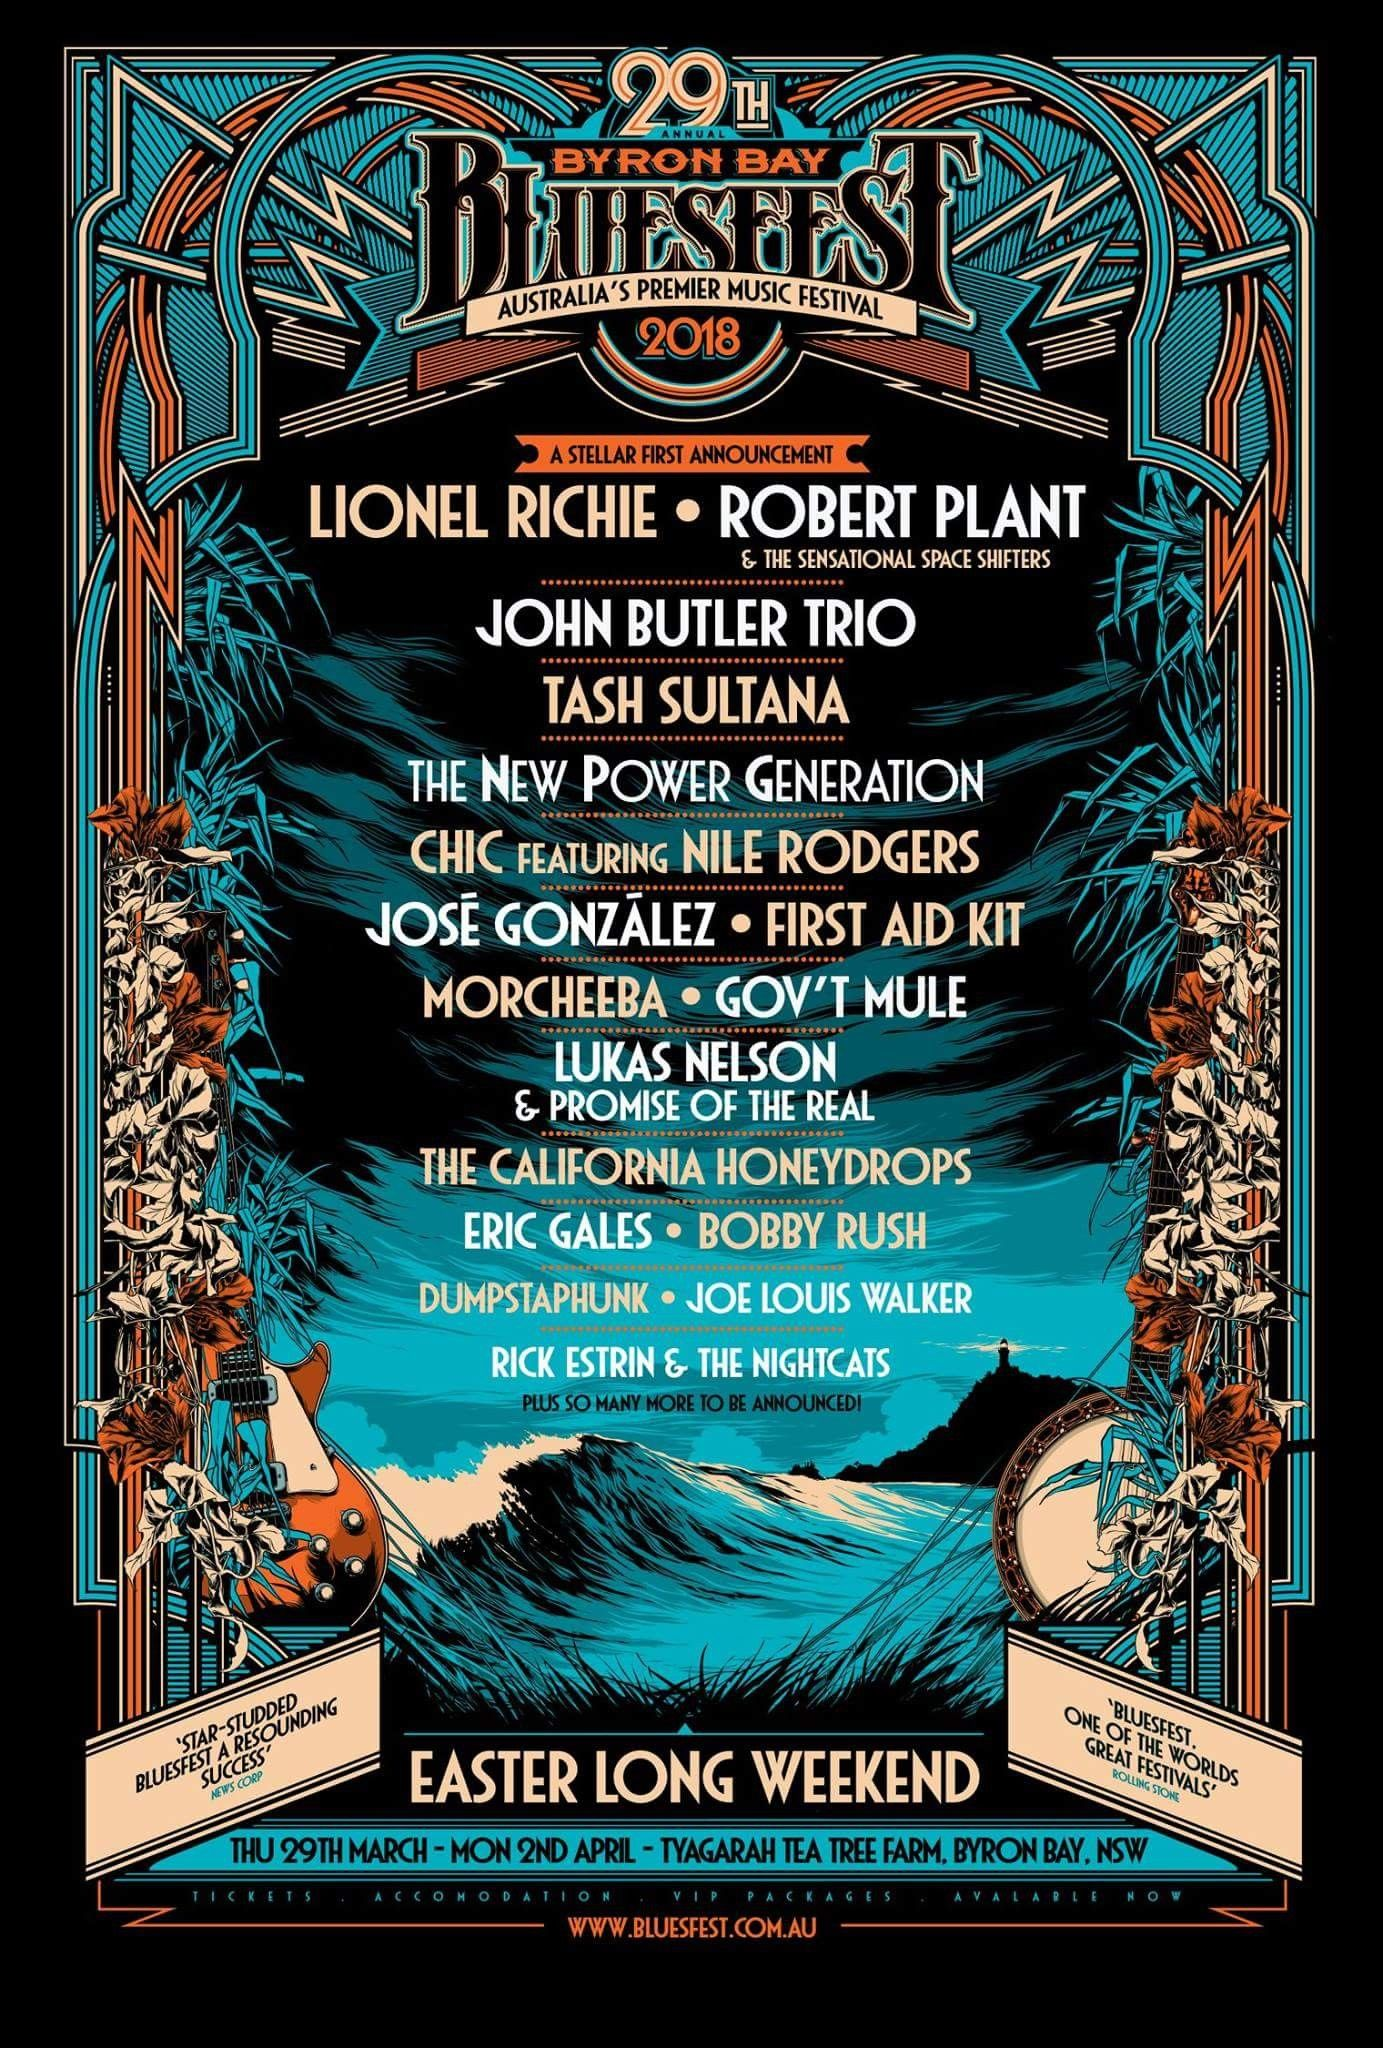 Pin By Ruby Delgado On Music Posters Music Festival Poster Roots Music Music Festival